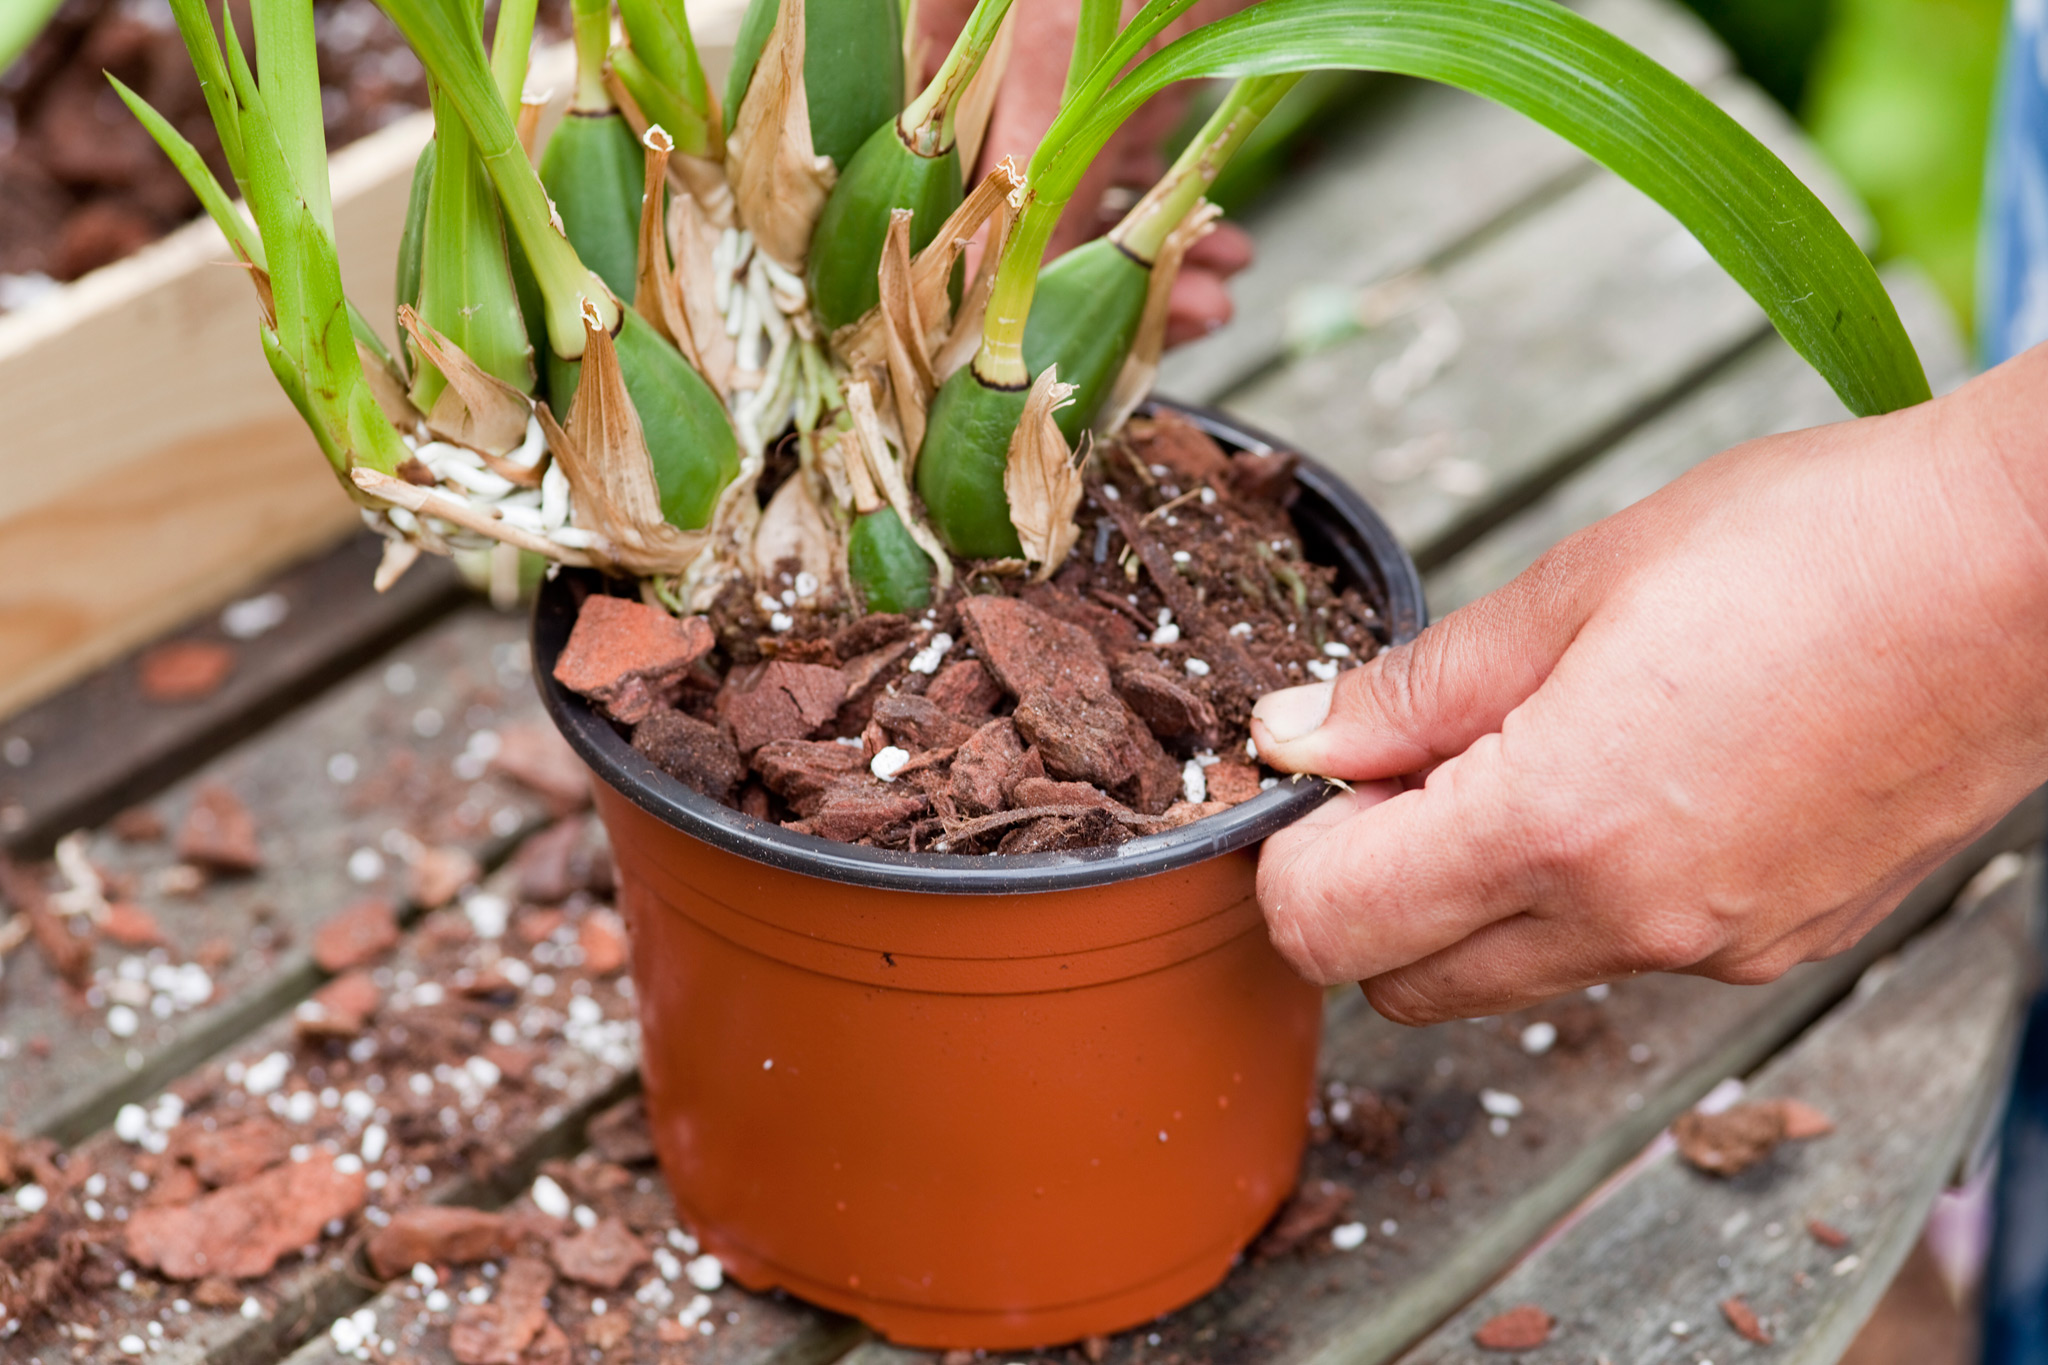 repotting-orchids-plant-pot-bound-orchids-in-larger-pots-2